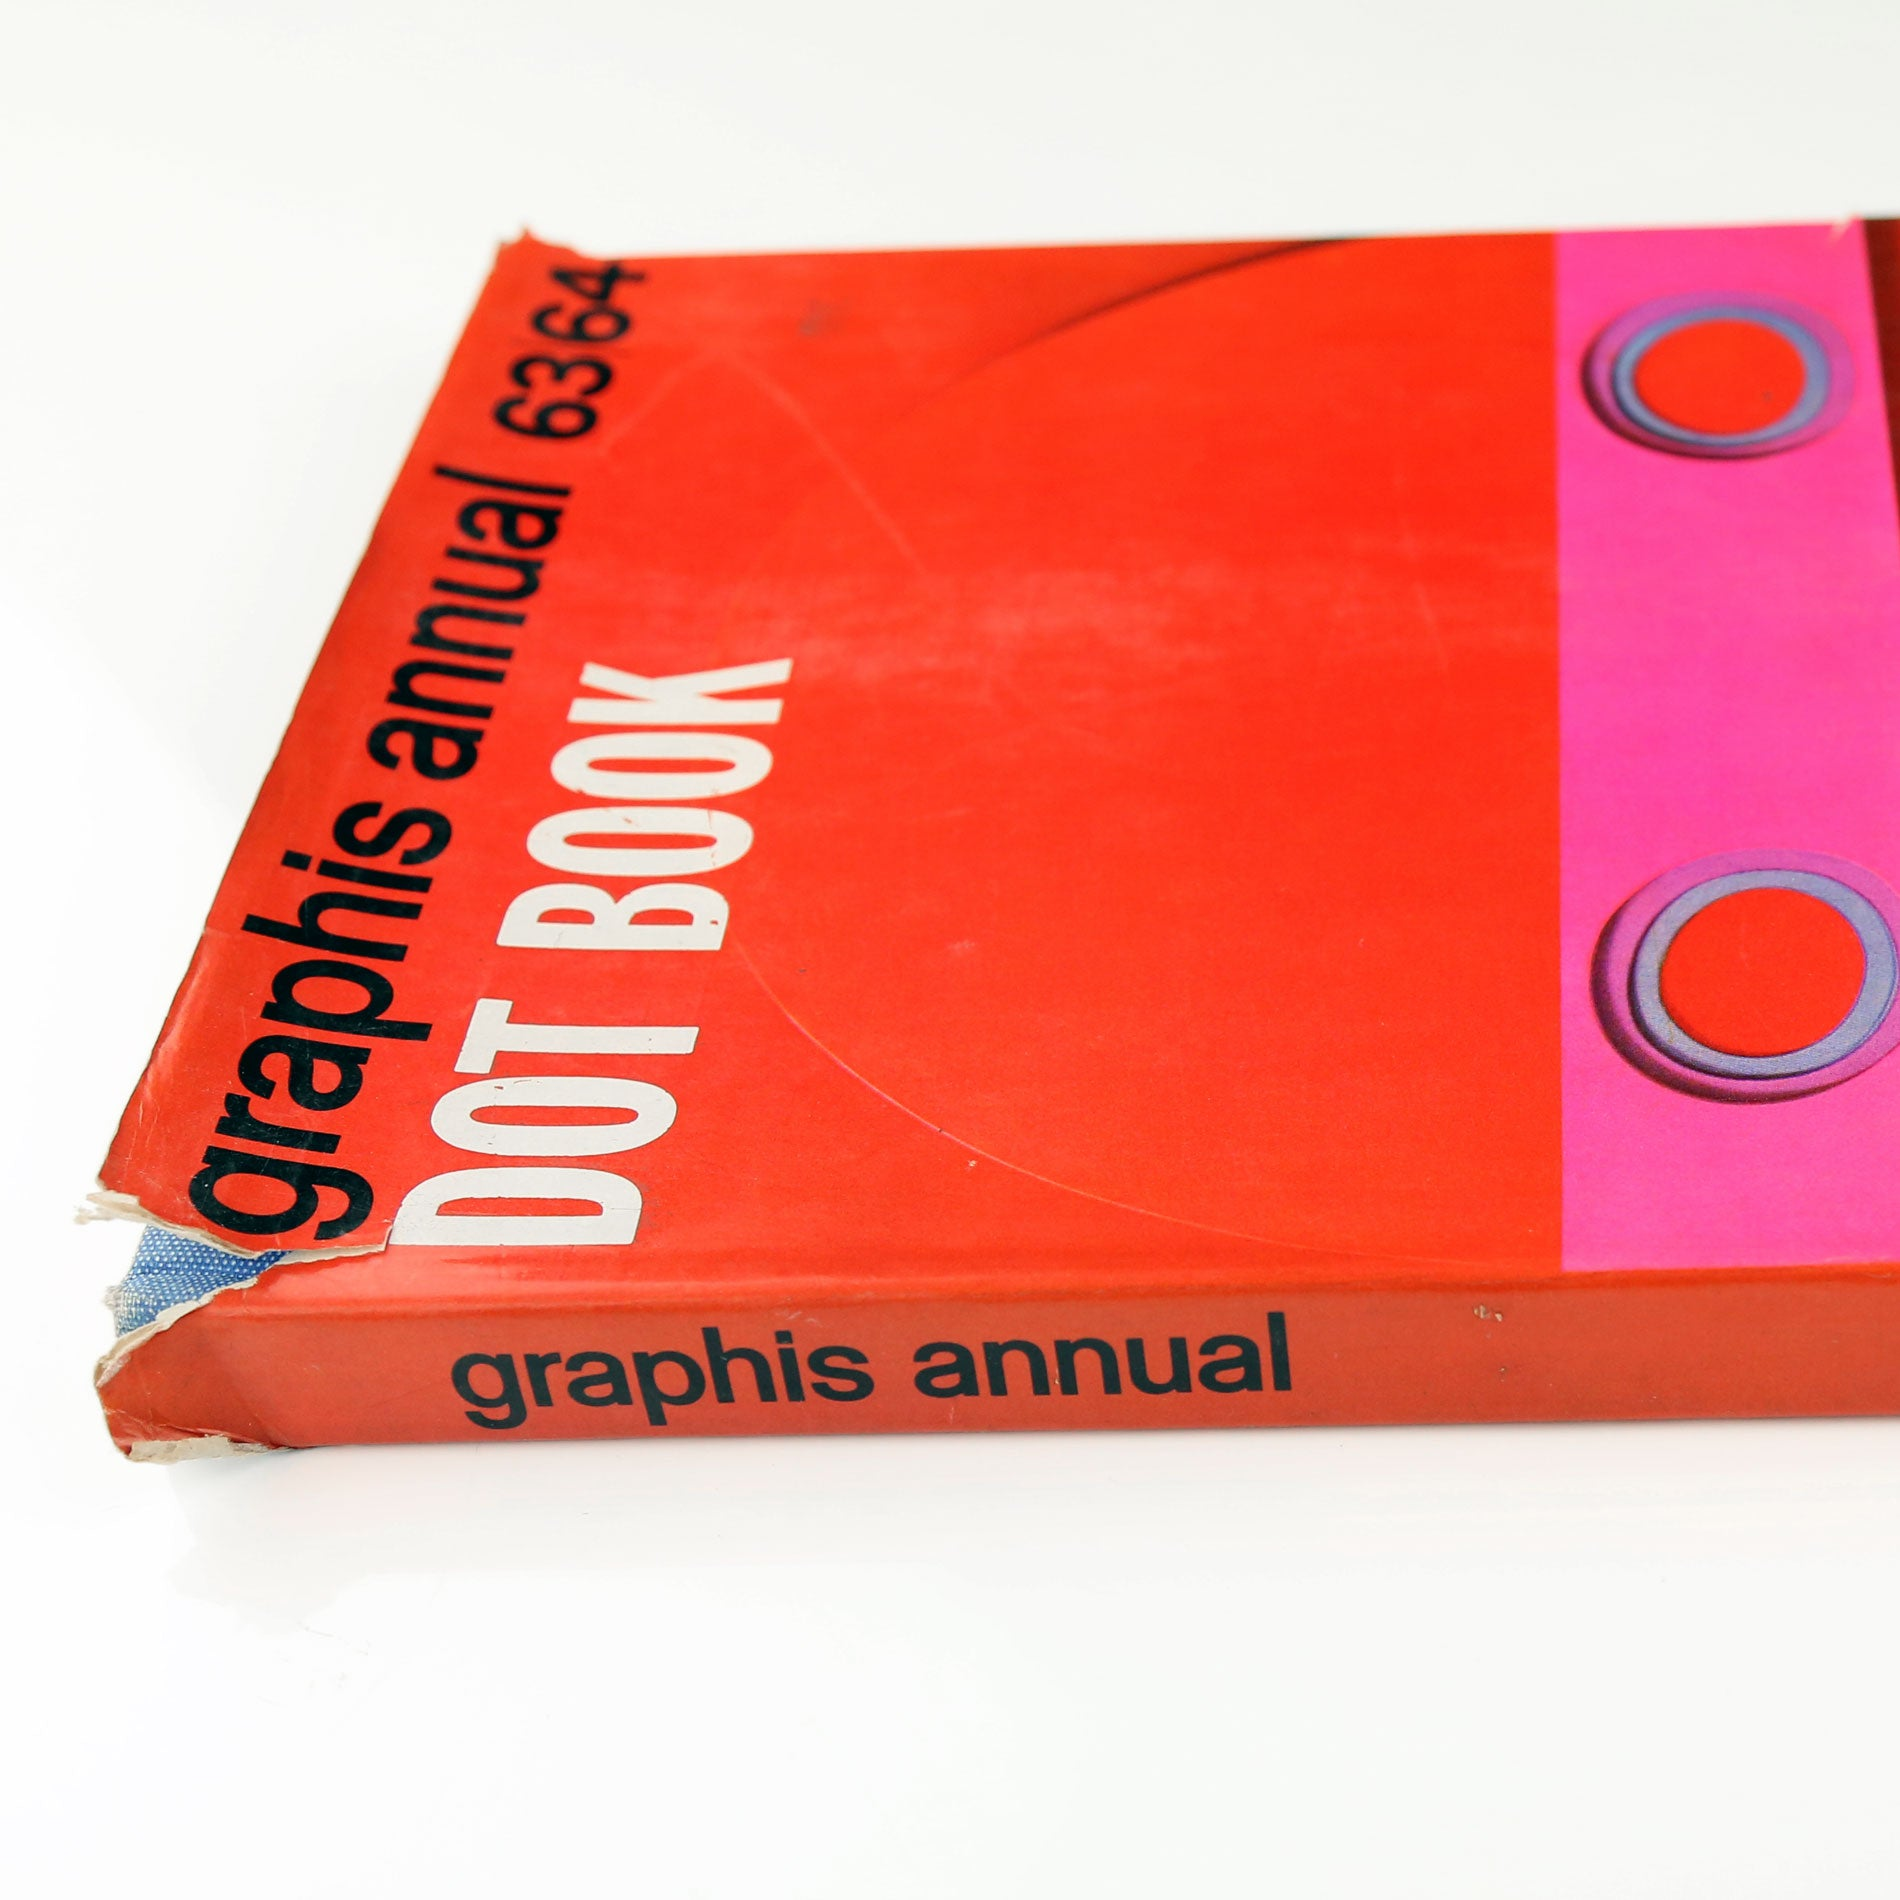 Graphis annual 63' 64' - Six 3 Shop